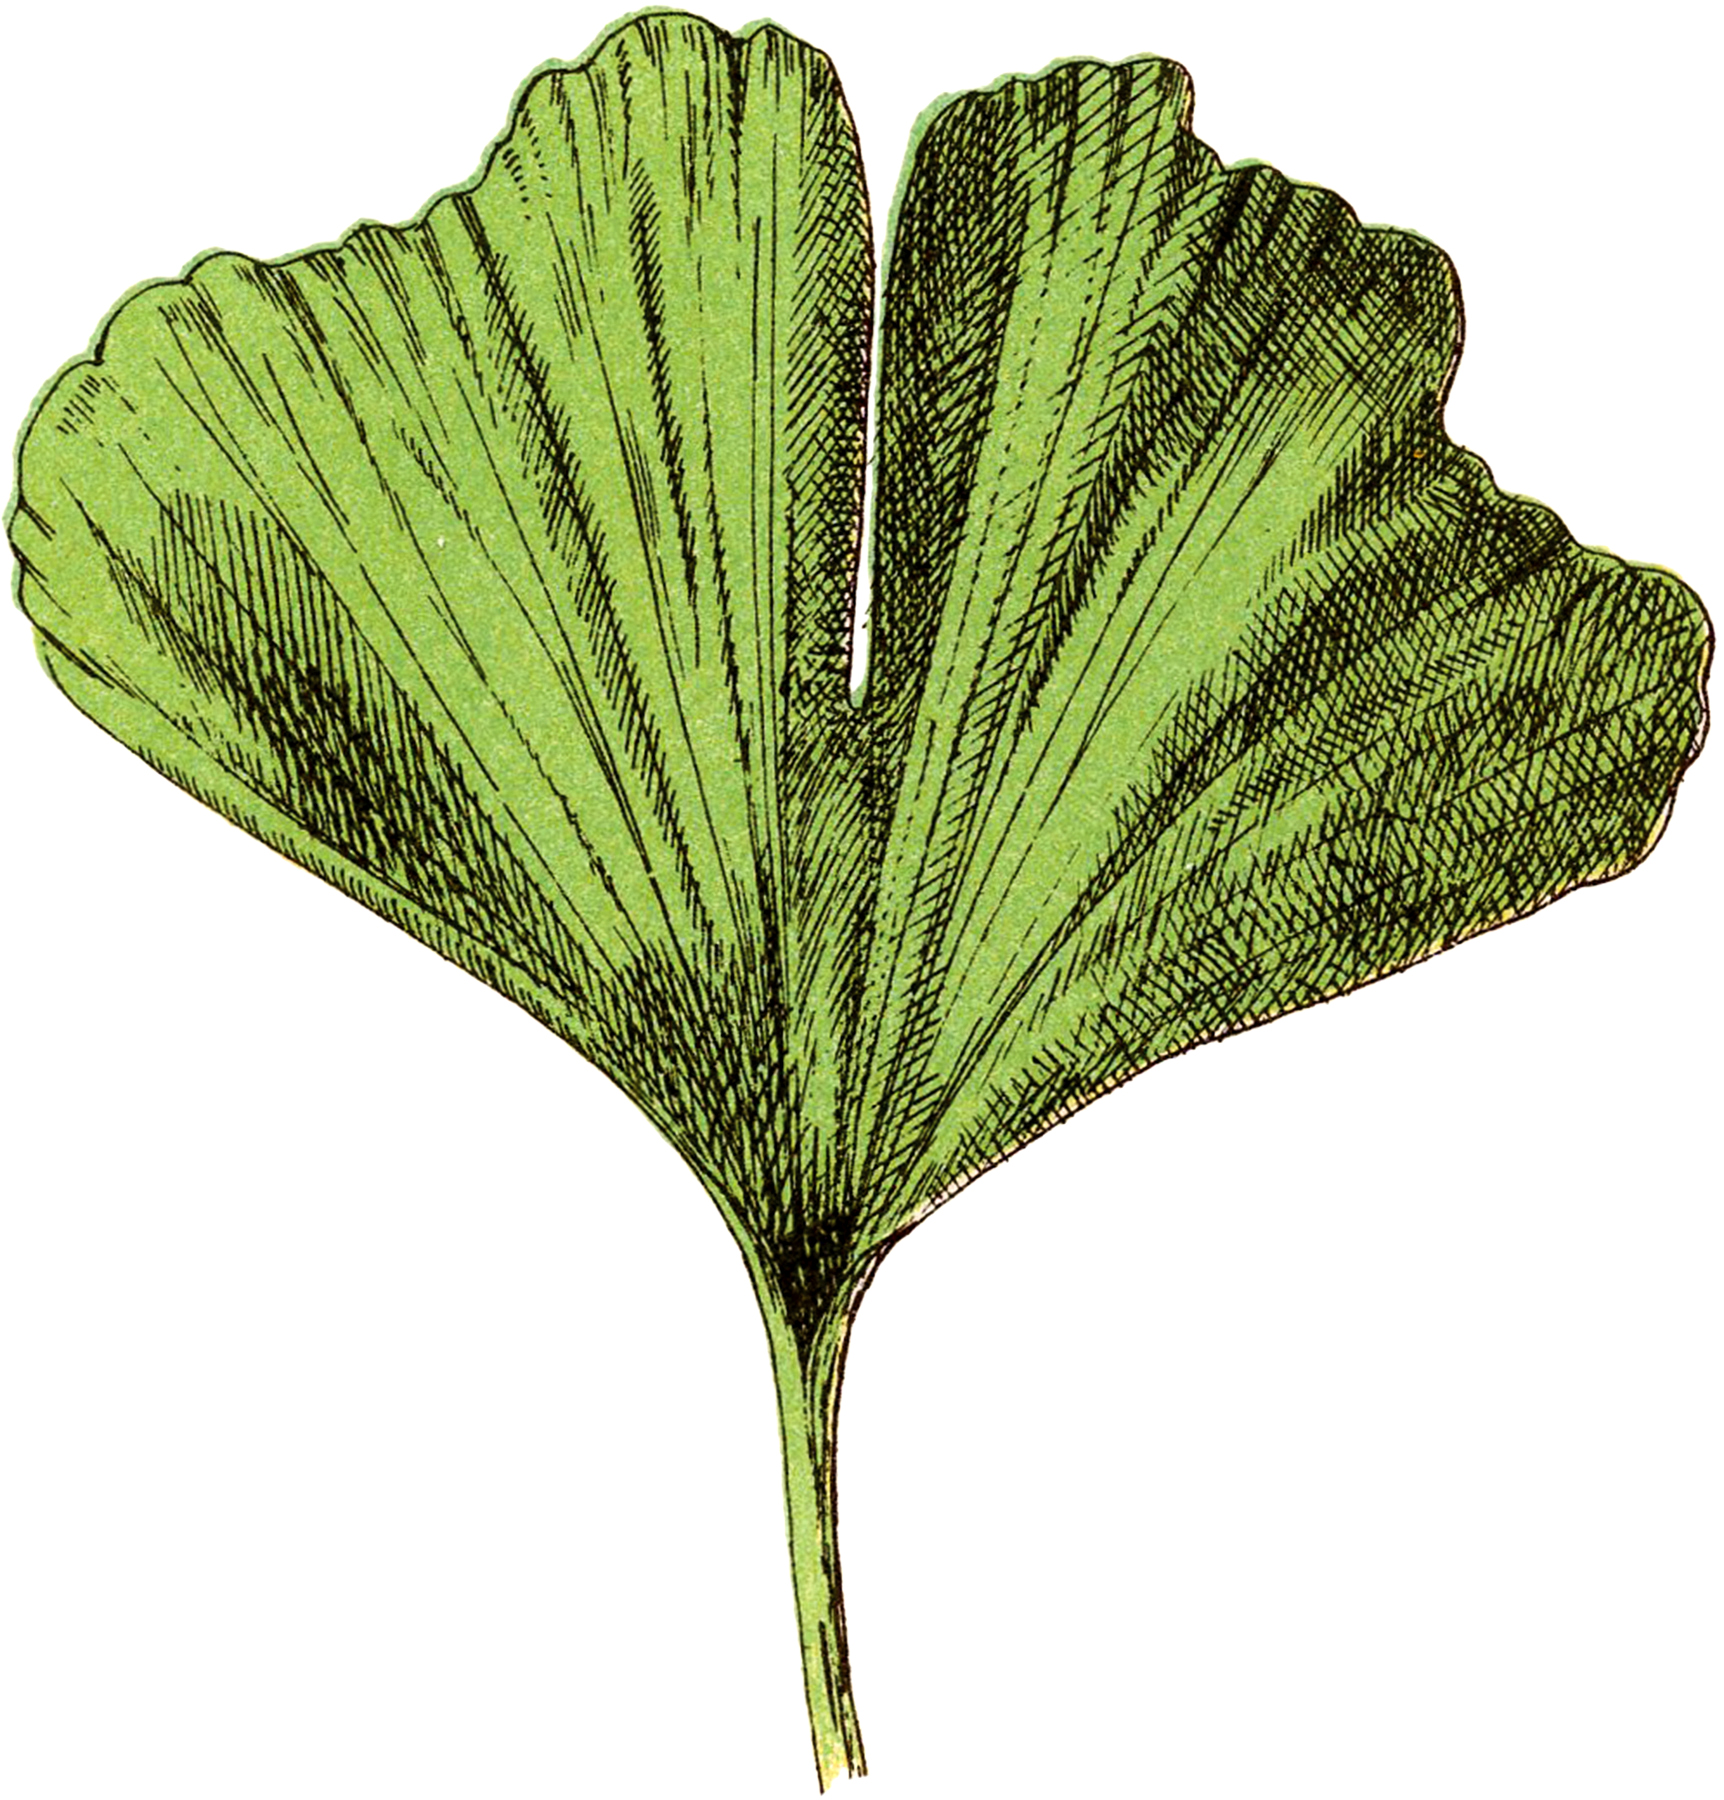 Free Ginkgo Leaf Image! - The Graphics Fairy